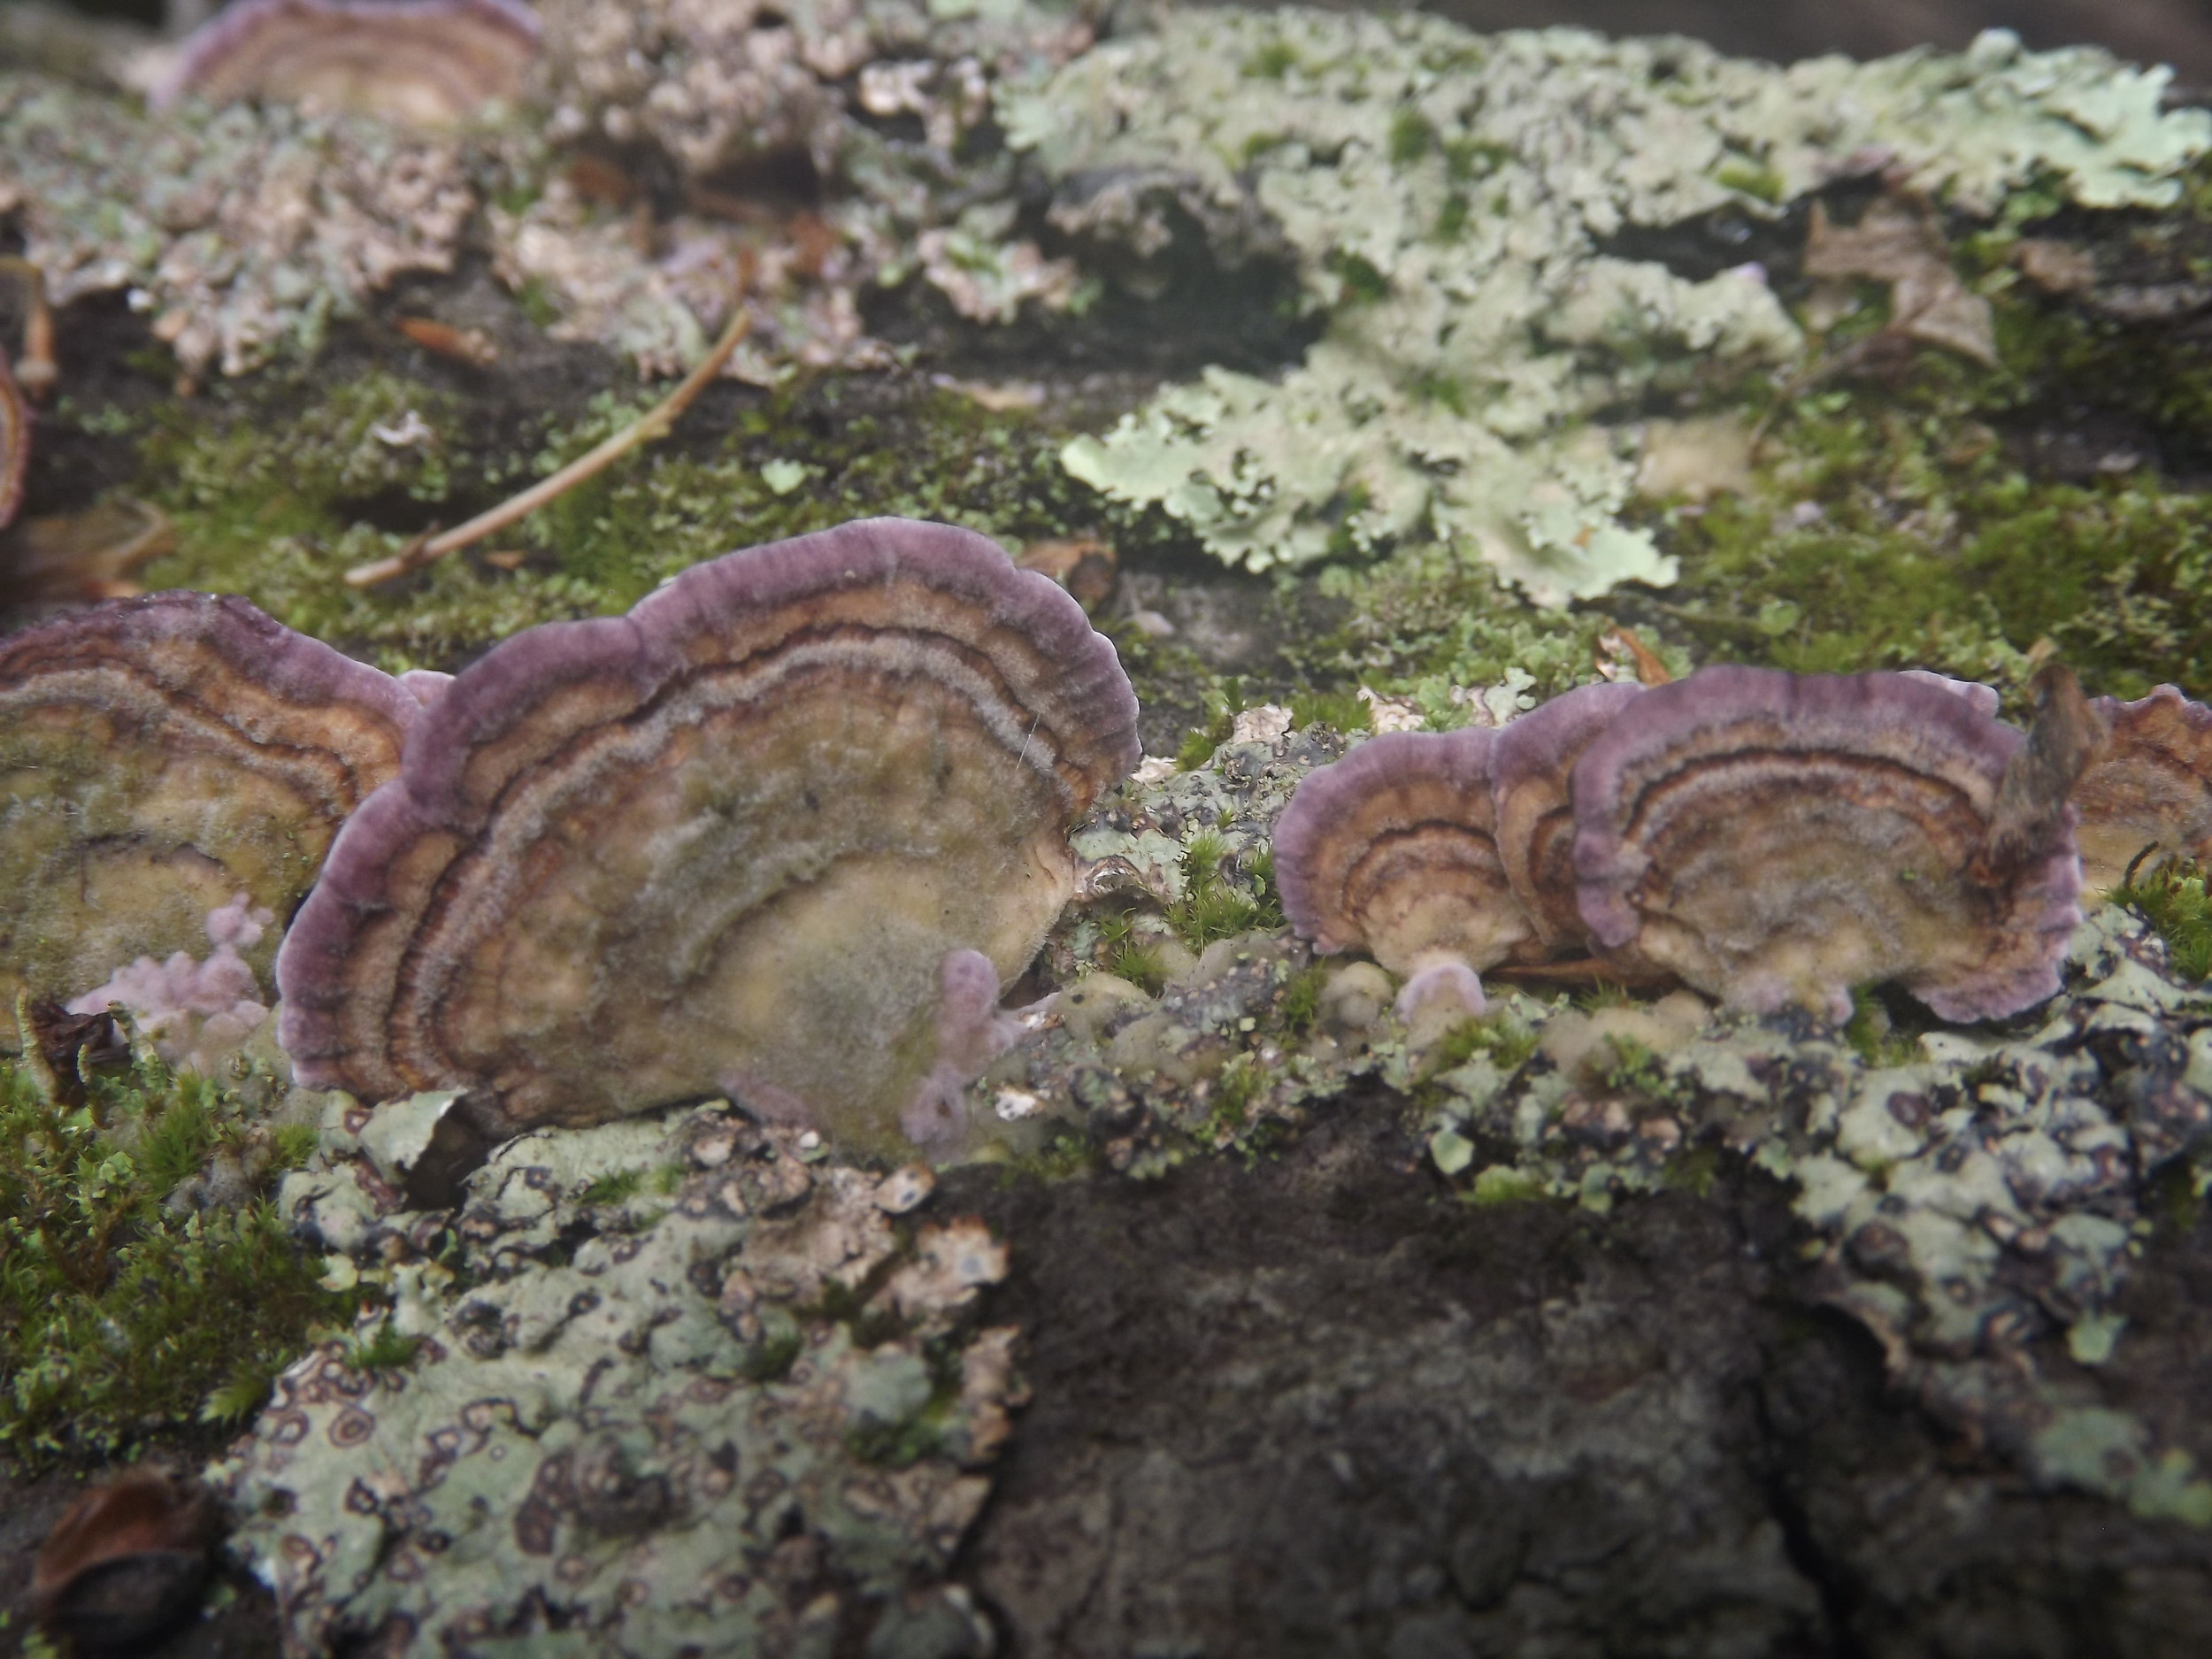 Violet Toothed Polypore ( Trichaptum biforme ) -  Violet Toothed Polypores are very beautiful when they are in their prime.  The purplish fringes on the fungi make are very deeply hued and quite striking even in low light conditions.